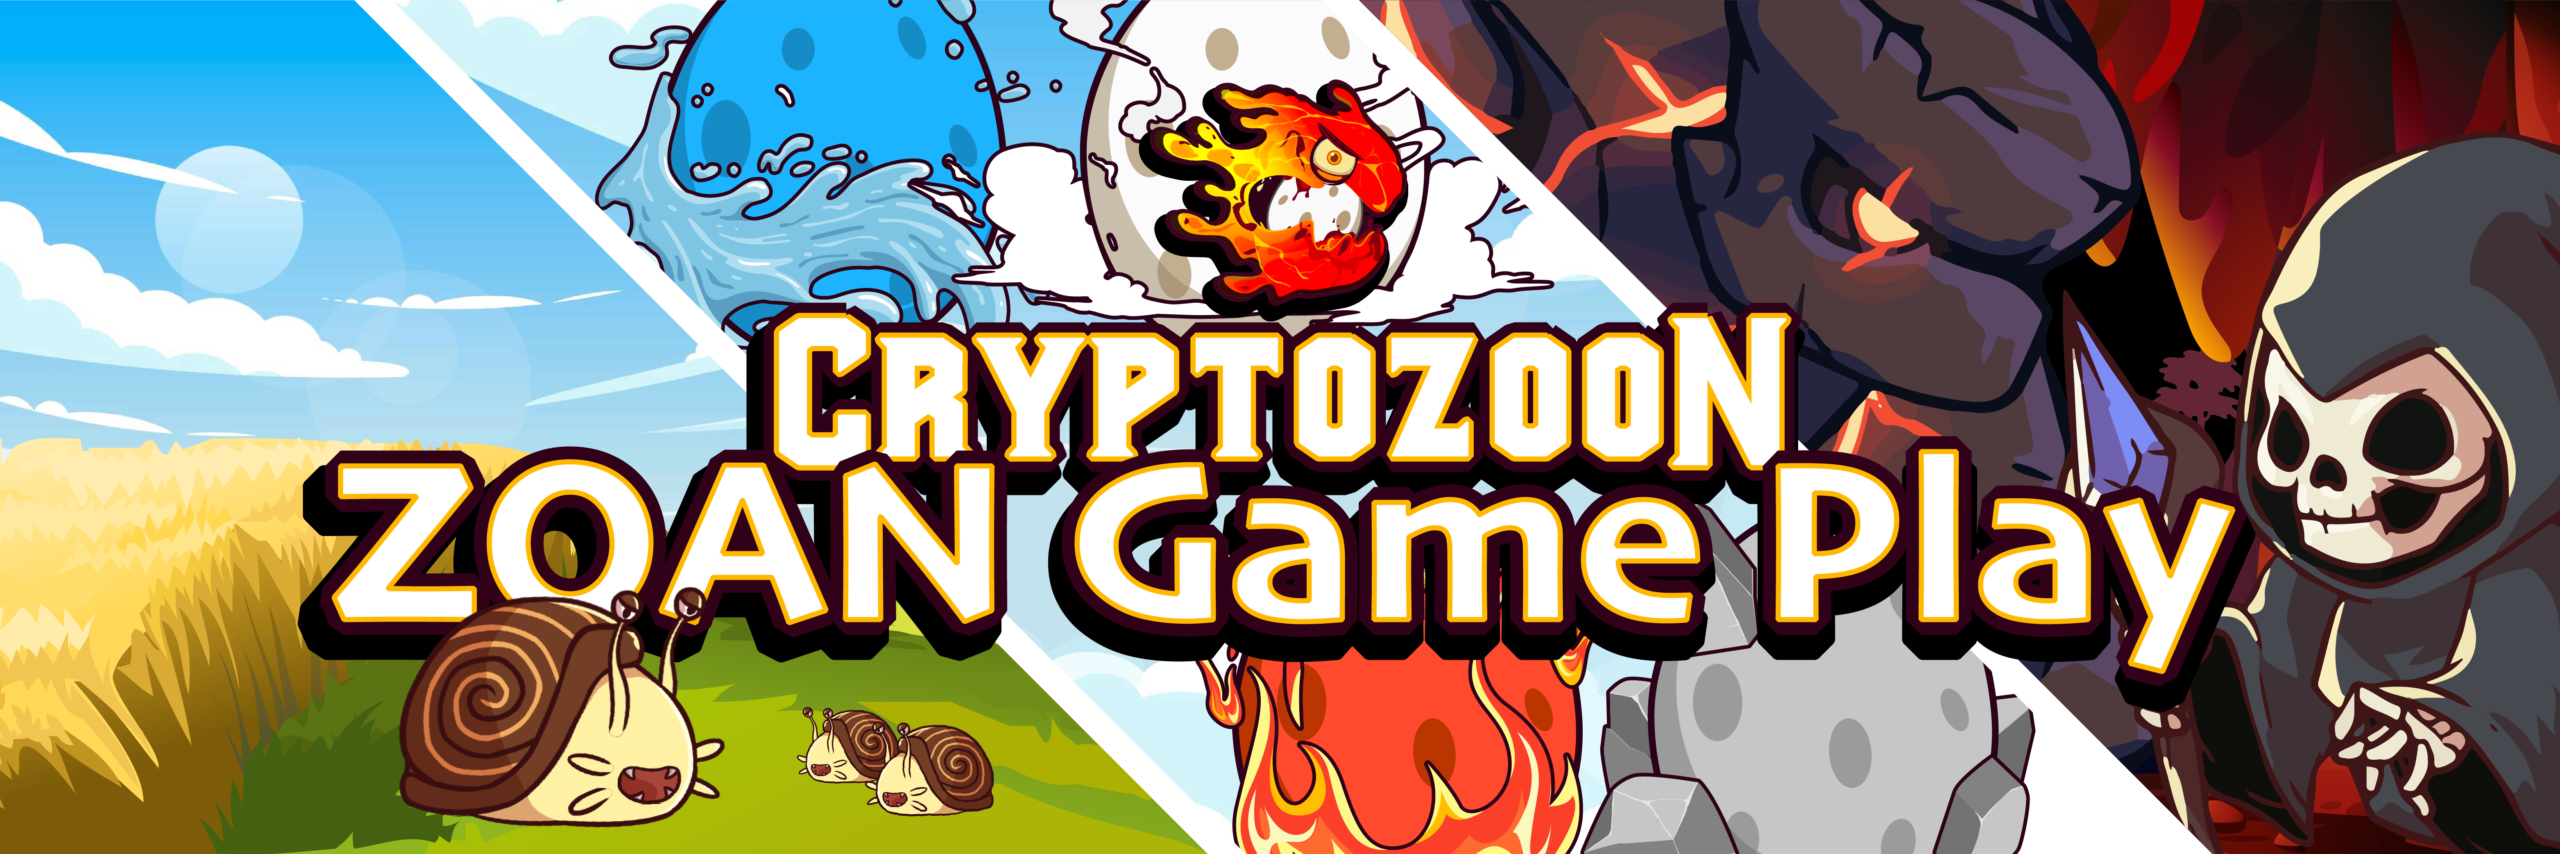 cryptozoon game